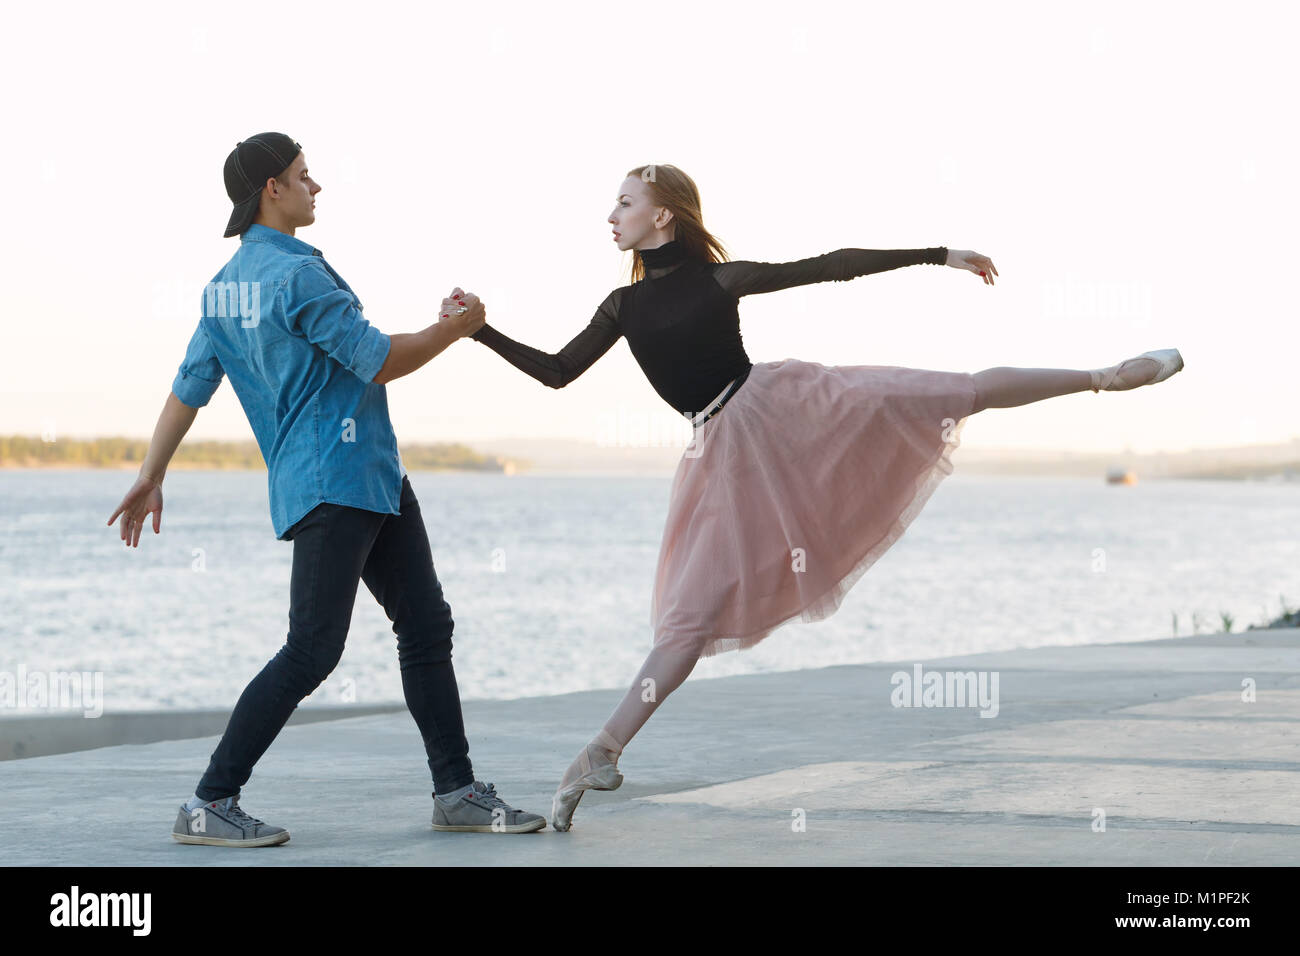 Slender ballerina dances with a modern dancer. Dating lovers. Passion and romance of dance. He holds her hand. Performance - Stock Image